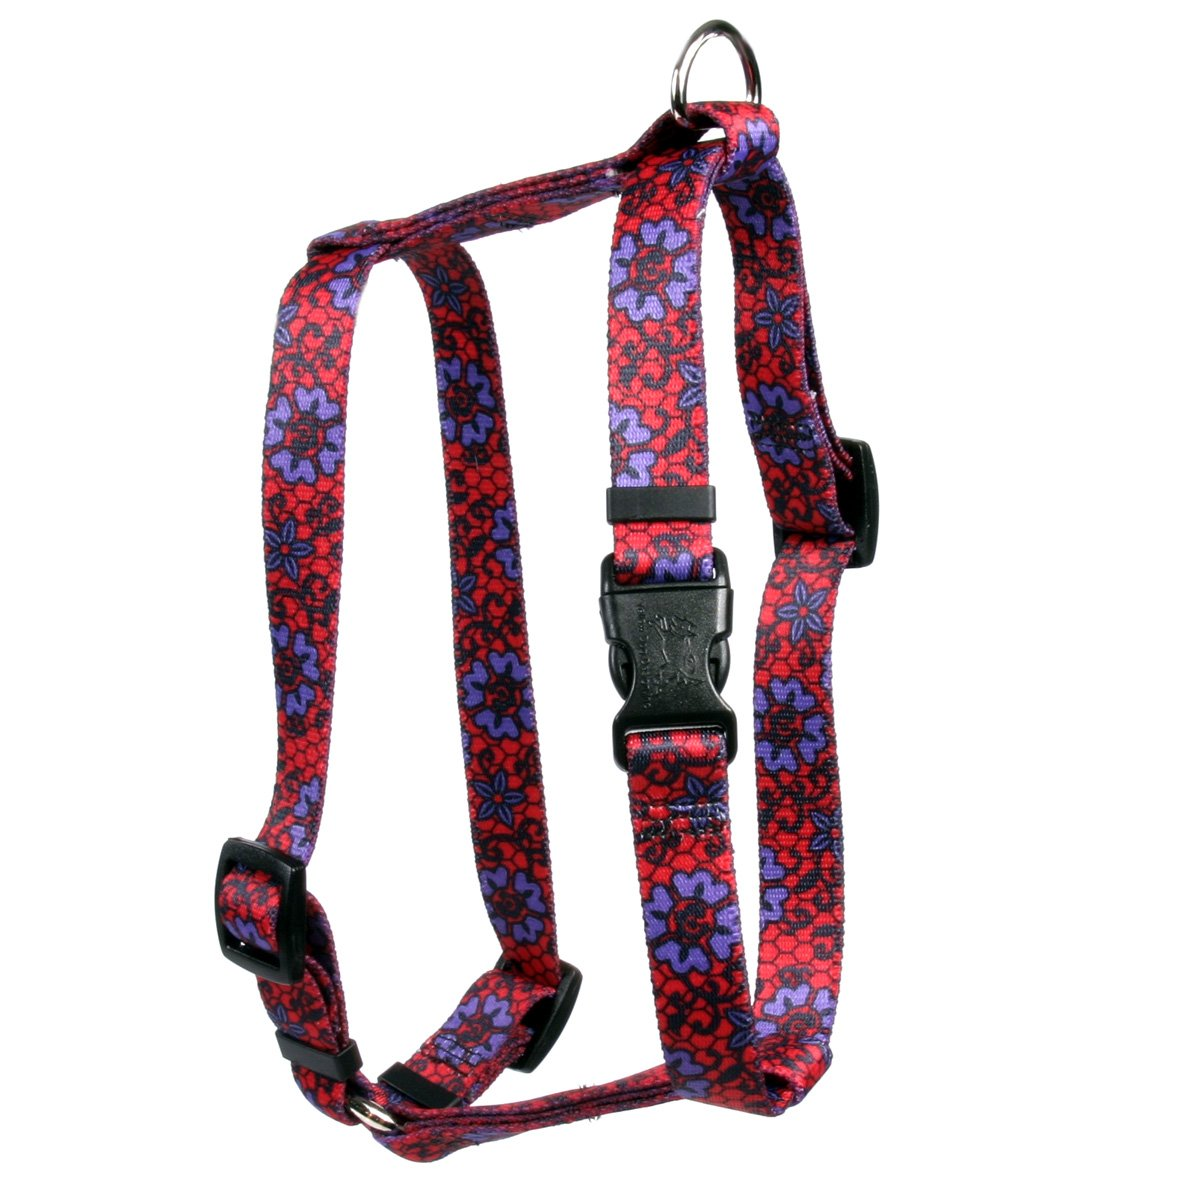 Yellow Dog Design Red Lace Flowers Roman Style H Dog Harness, Large-1'' Wide and fits Chest of 20 to 28''